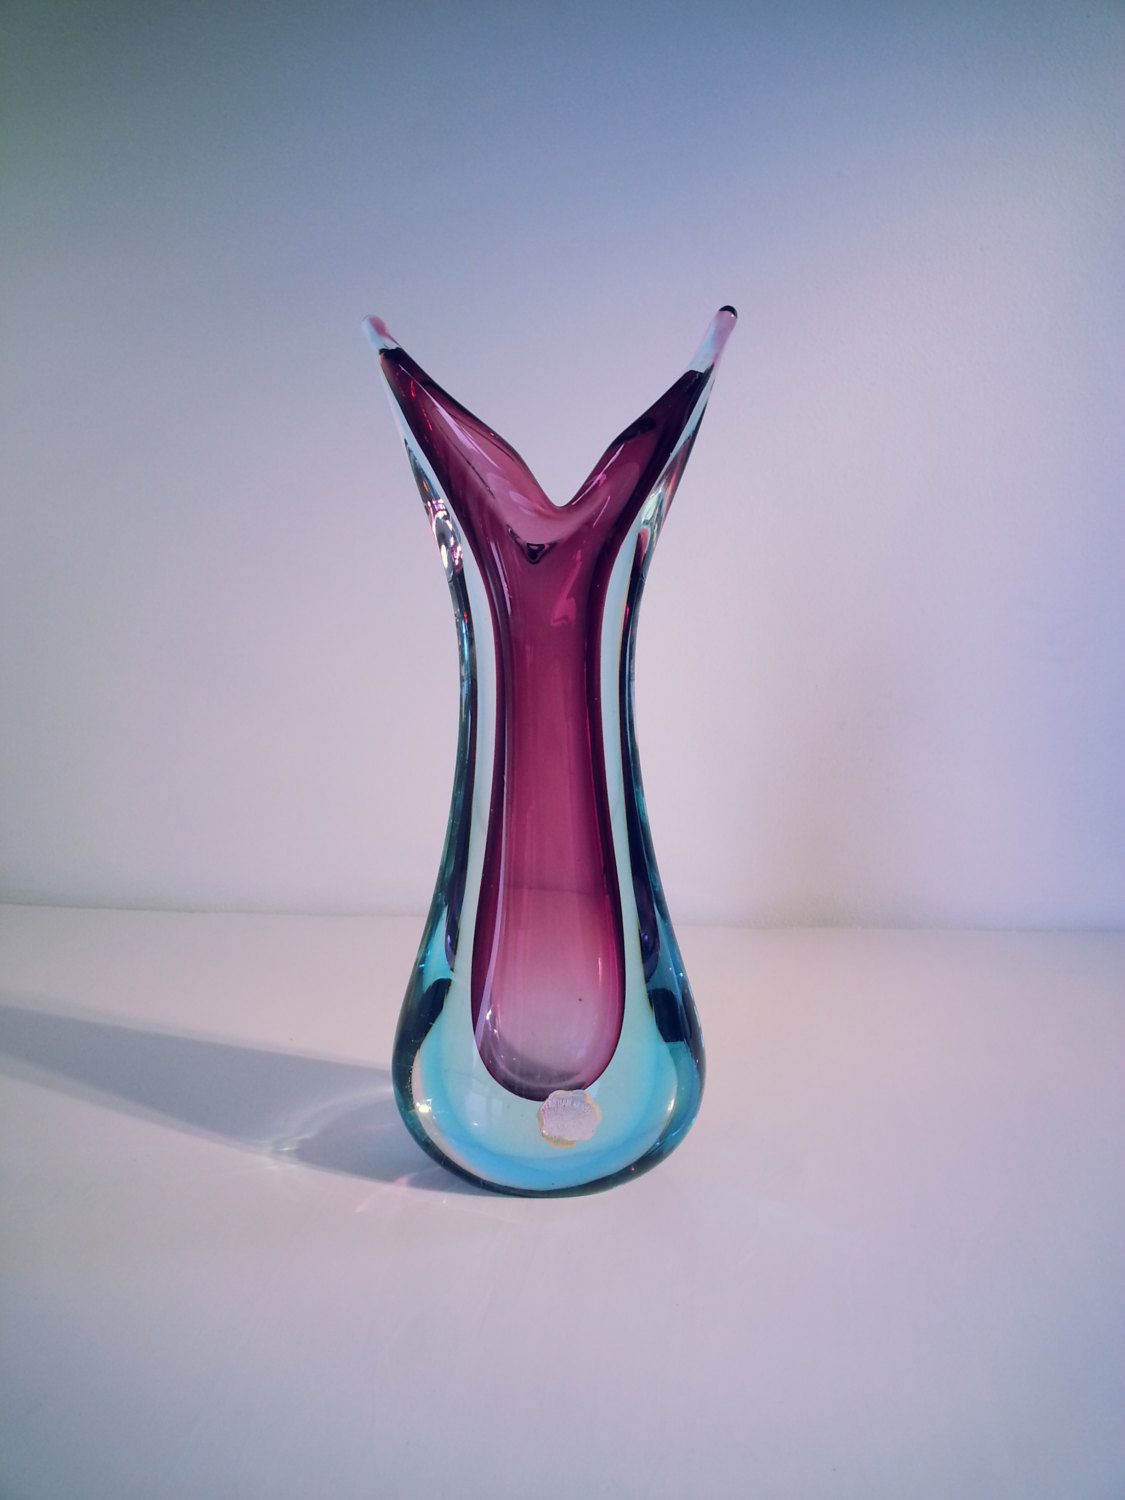 22 Awesome Wide Mouth Glass Vases